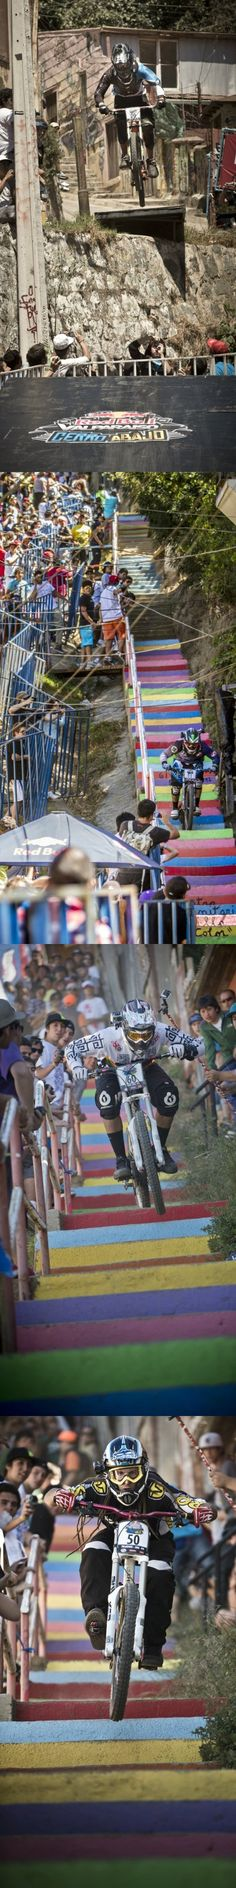 A colorful race #redbull #mtb #downhill #valparaiso